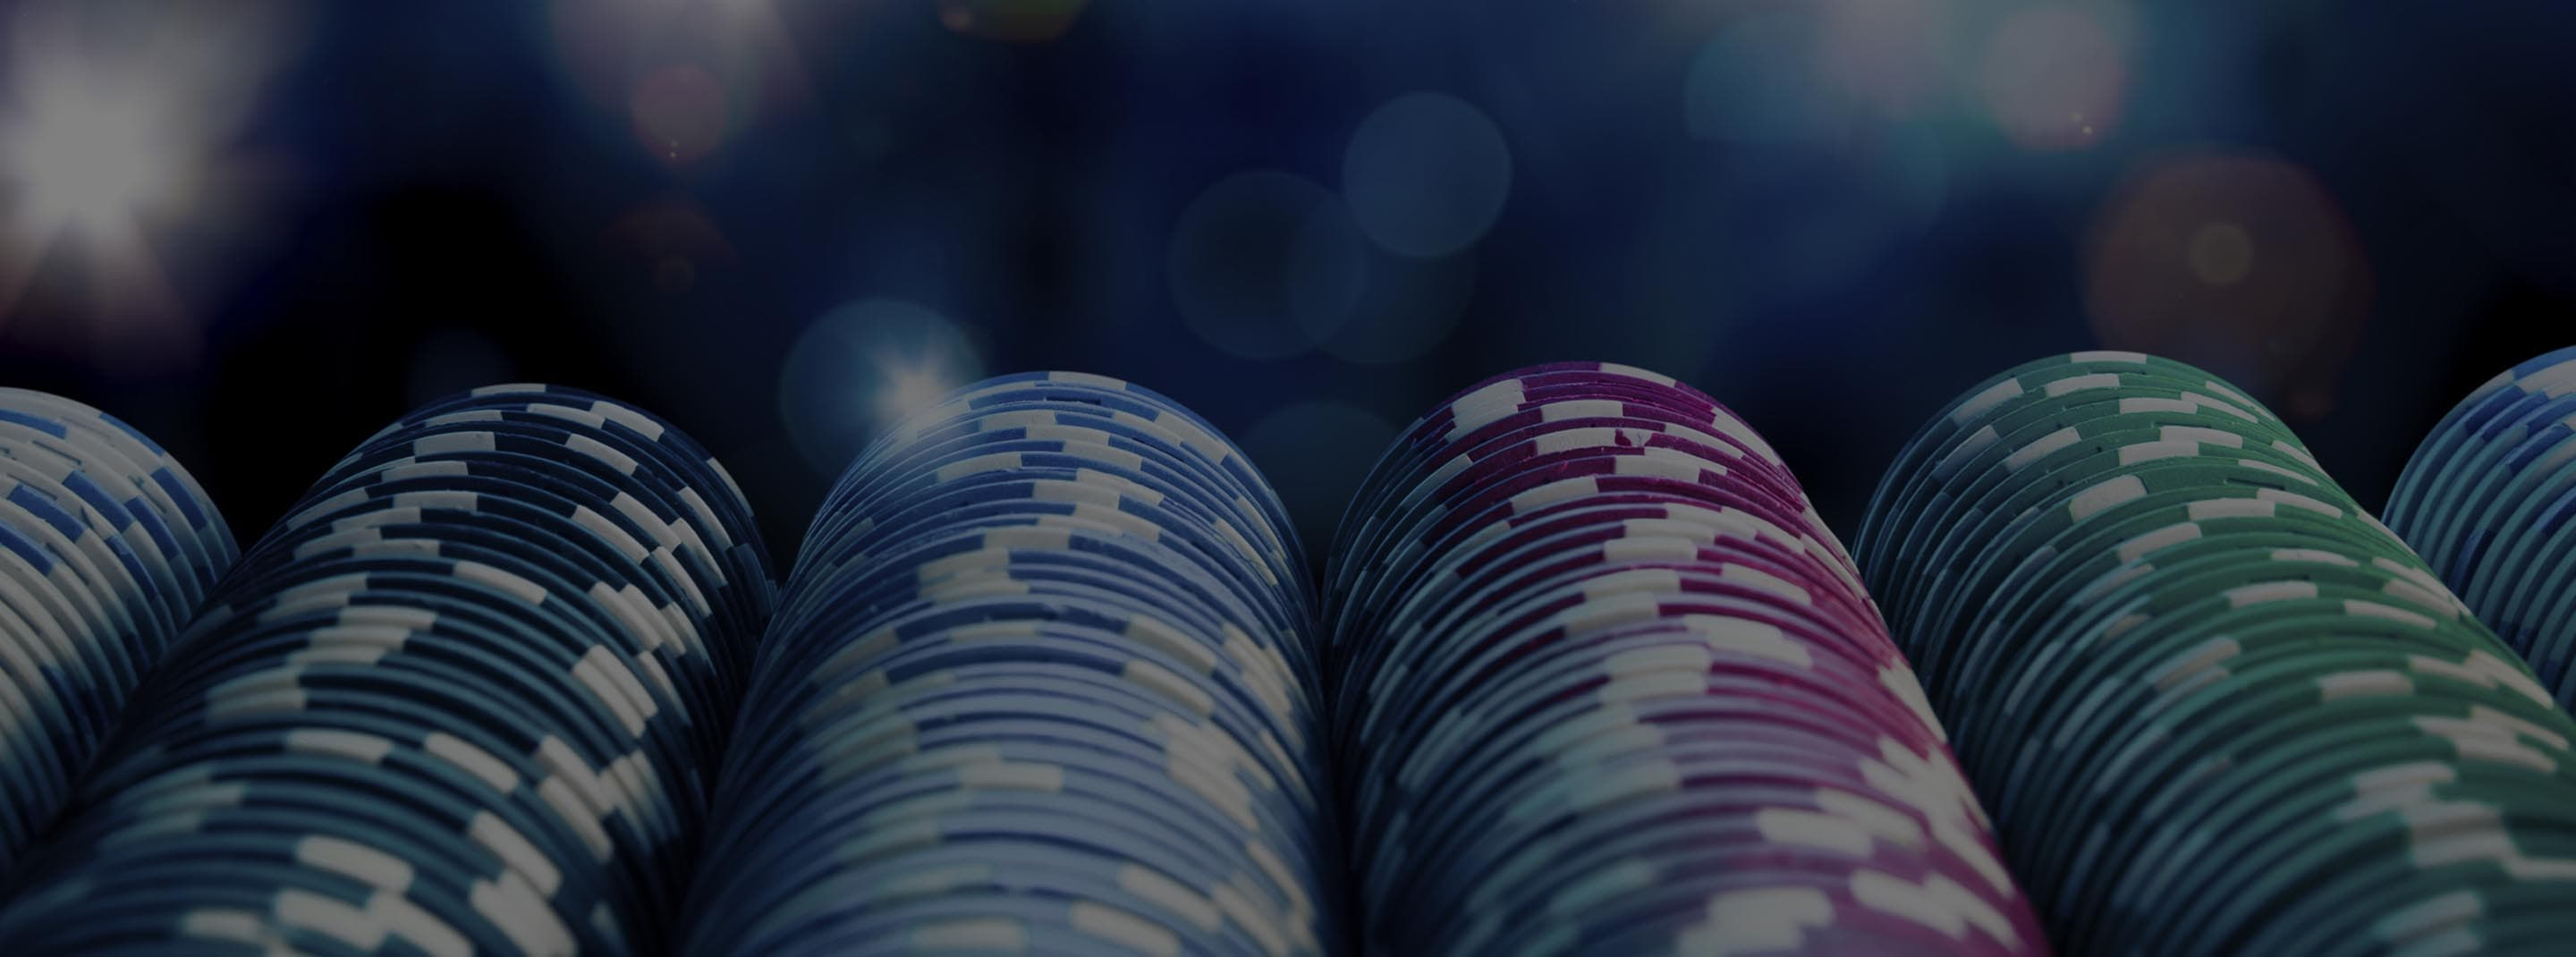 Rows of poker chips